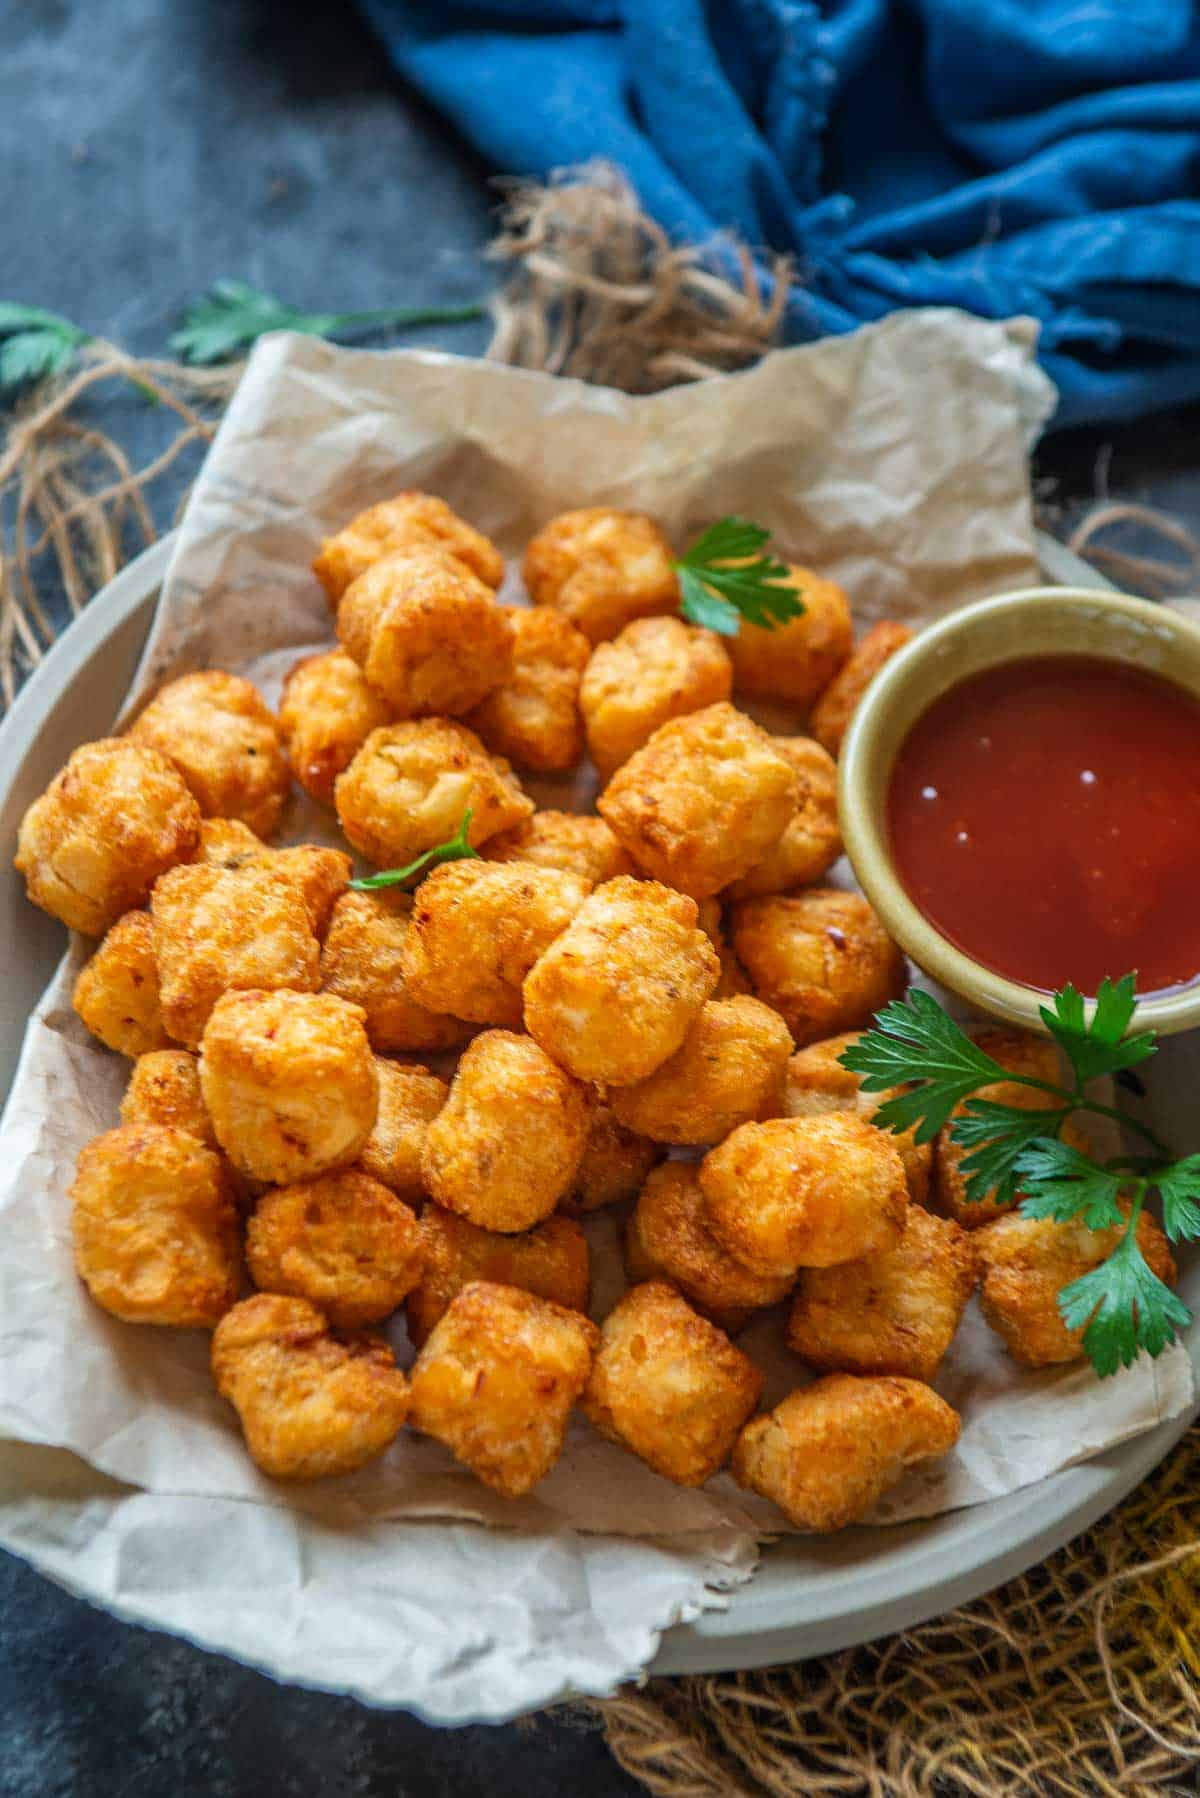 Air fryer tater tots served in a bowl.